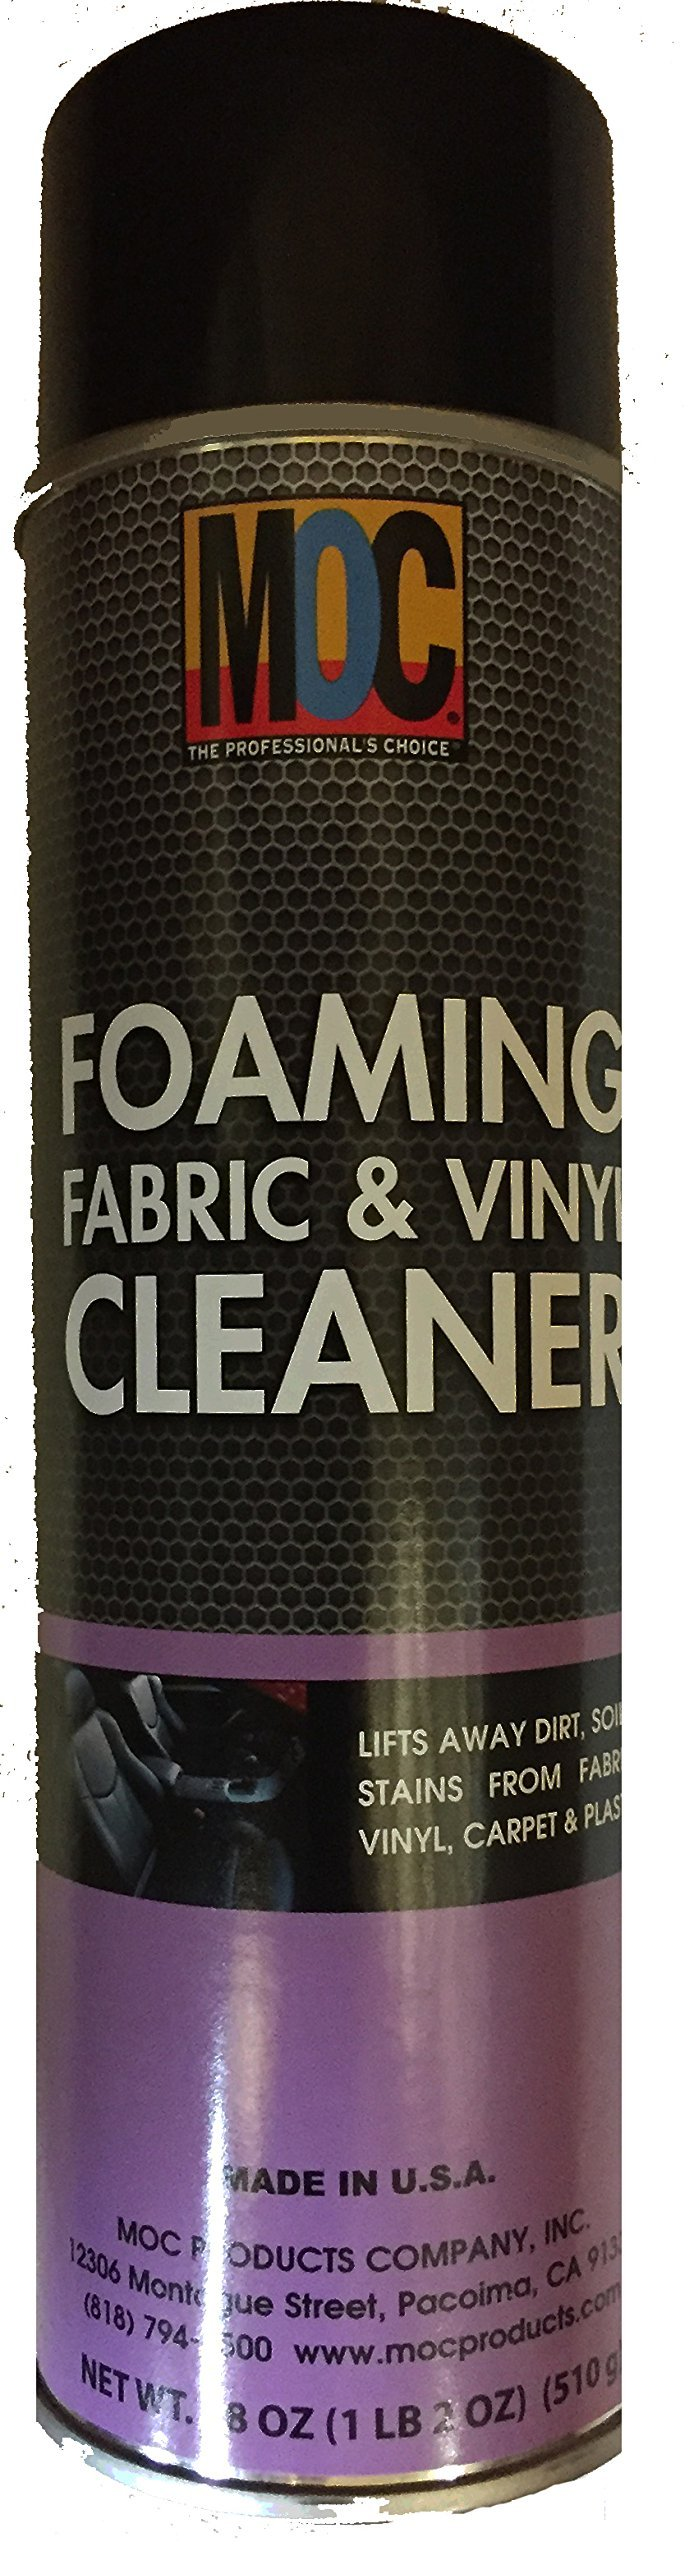 MOC Professional Foaming Fabric & Vinyl Stain Cleaner (Professional Detailer's #1 Choice)